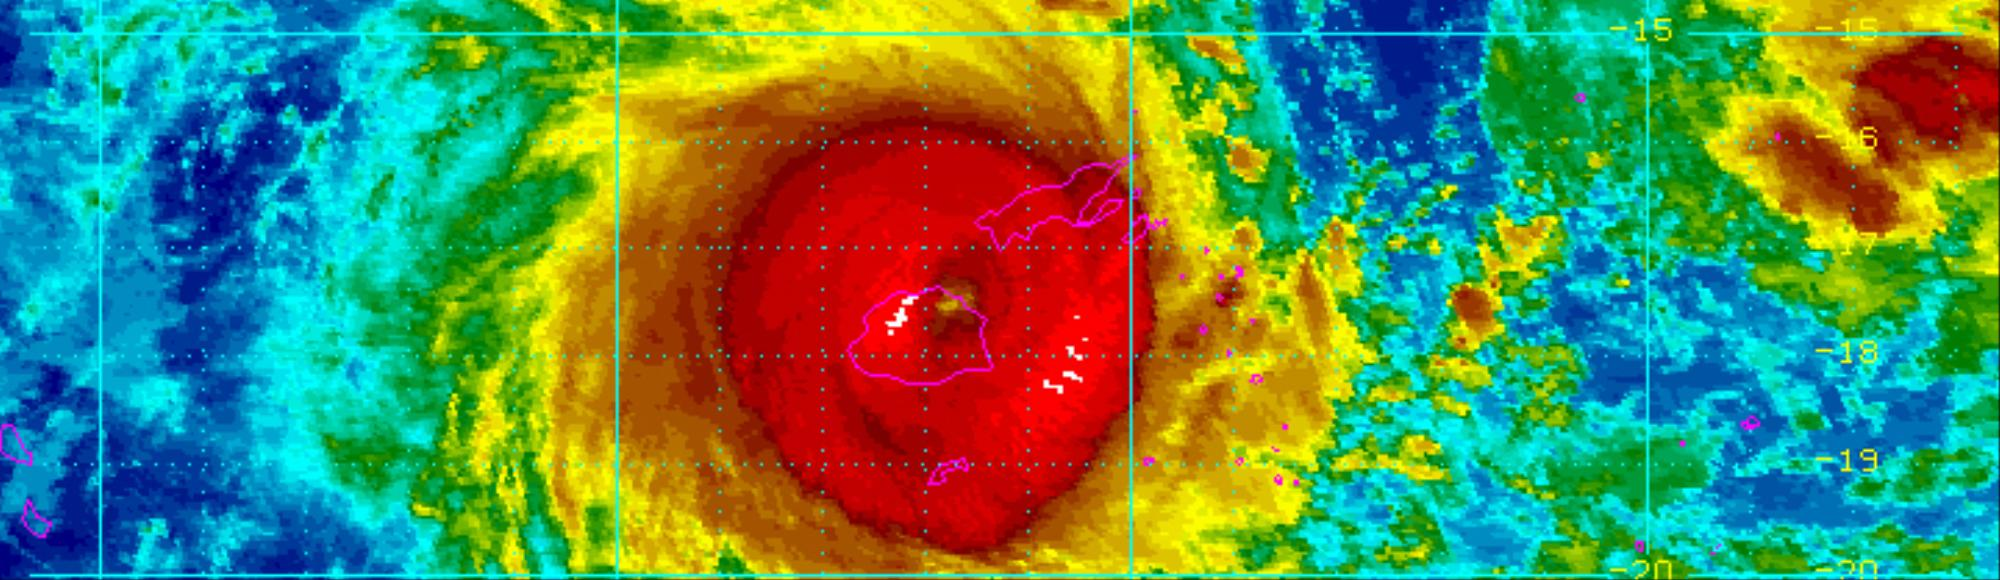 Fiji Just Got Hammered by One of the Most Powerful Tropical Storms Ever Recorded